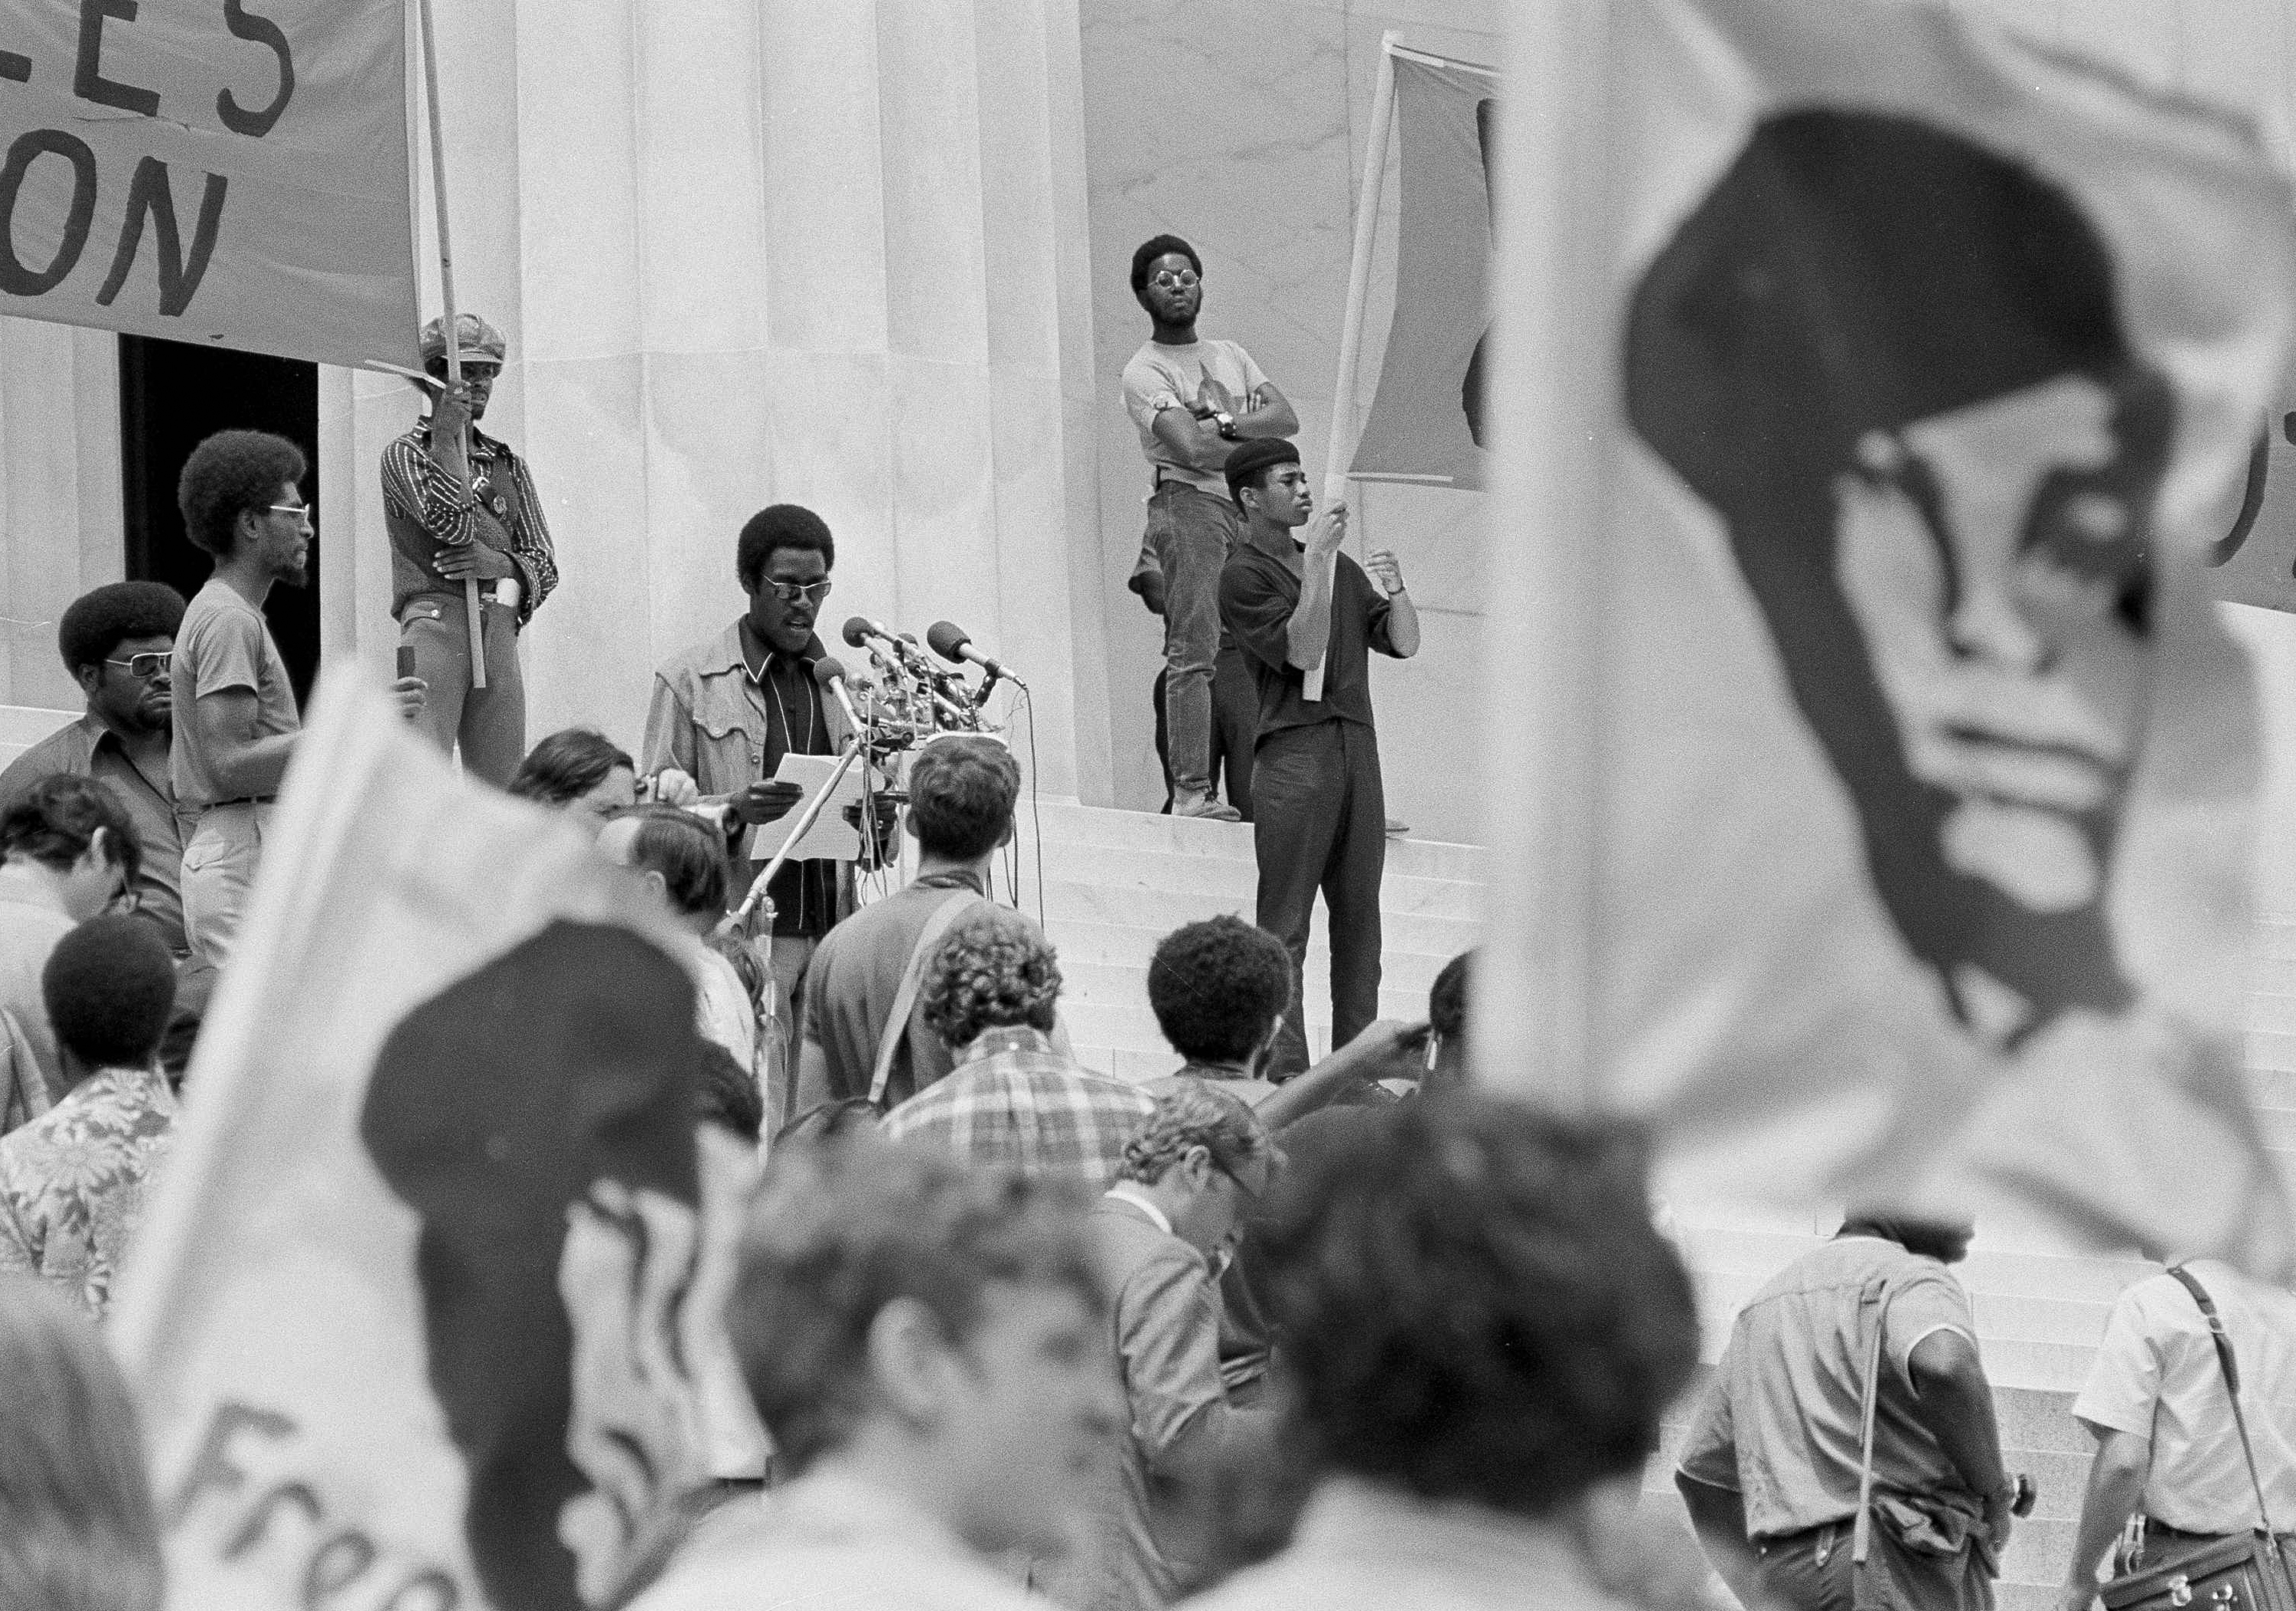 The Panthers were fundamentally a political party. Here, Panther Chief of Staff David Hilliard calls for a new U.S. Constitution from the steps of the Lincoln Memorial in Washington on June 19, 1970, to guarantee all Americans the rights of life, liberty and the pursuit of happiness -- rights they say blacks had been denied.